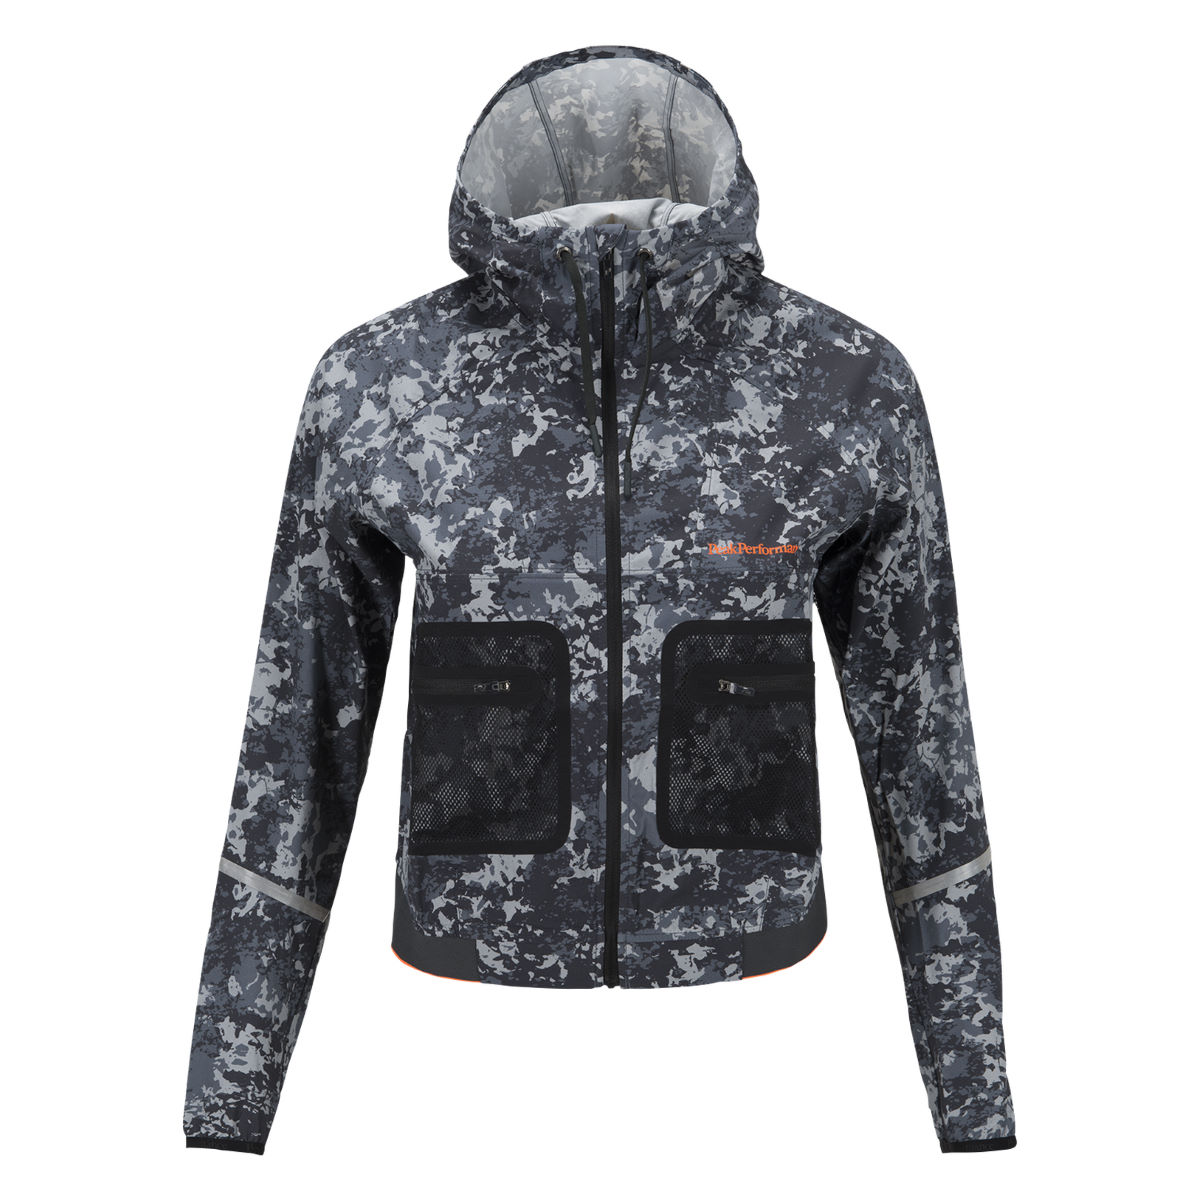 Peak Performance Womens West 4th Street Printed Jacket - Medium